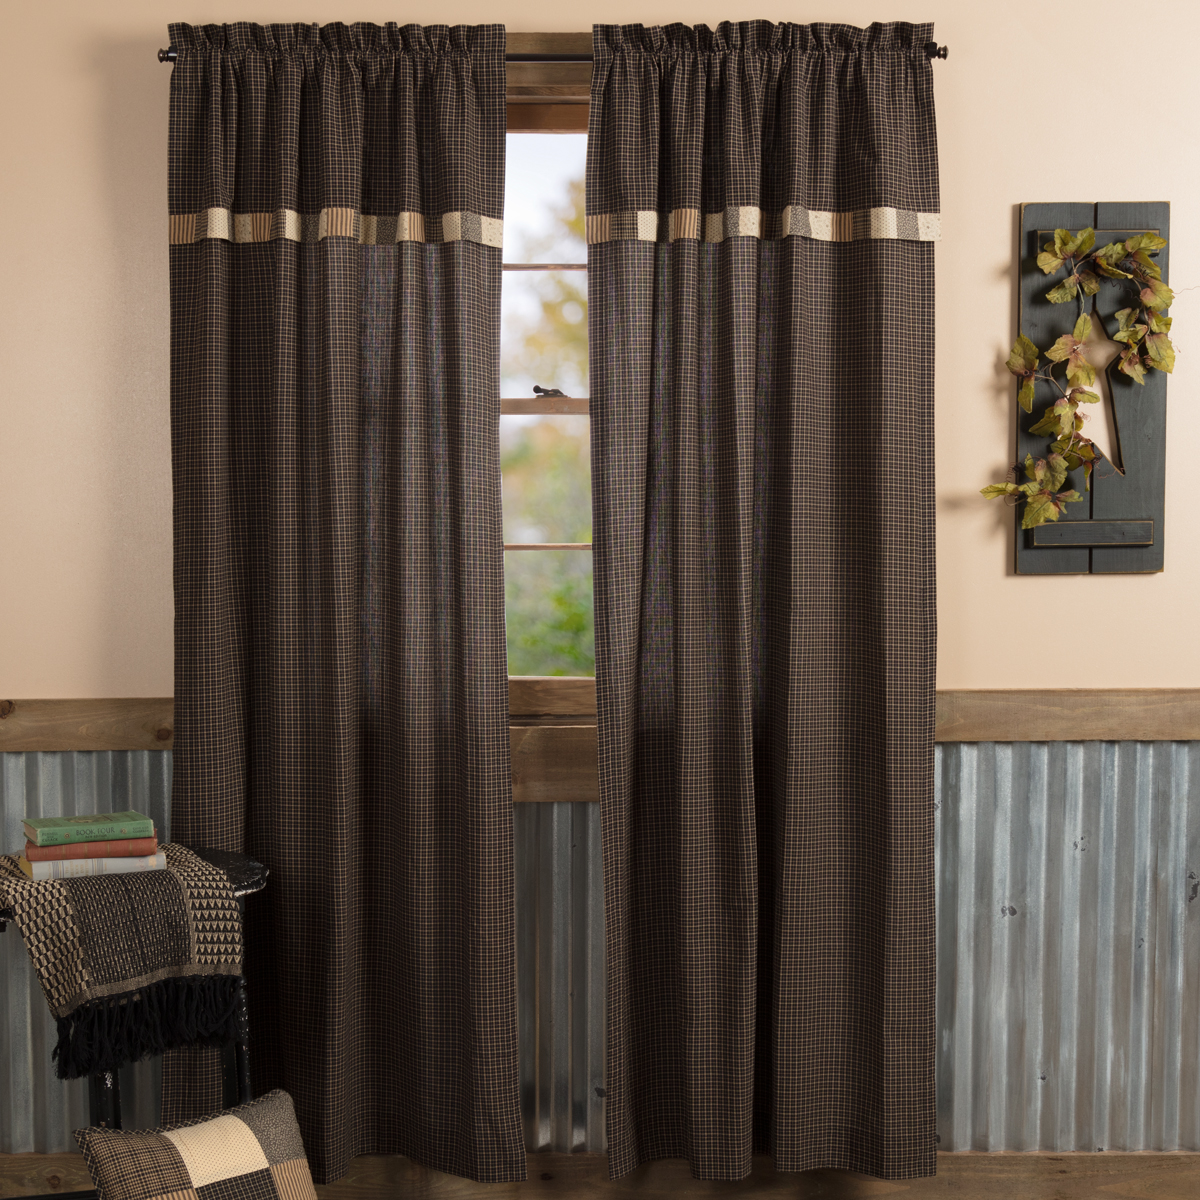 Kettle Grove Panel with Attached Valance Block Border Set of 2 84x40